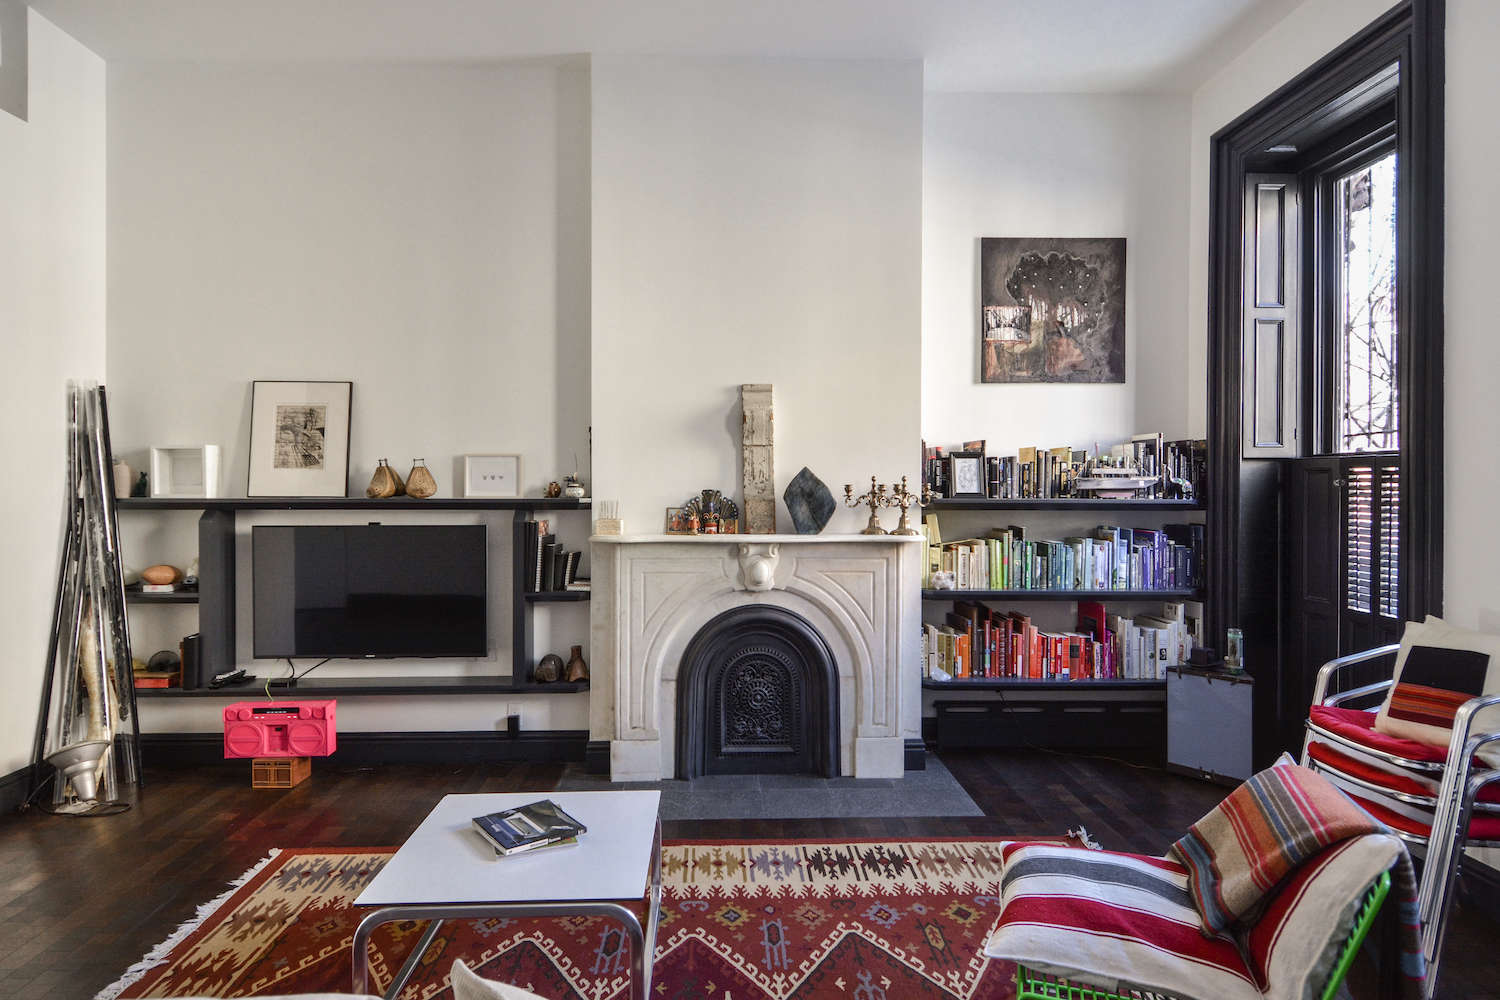 architects gregory merkel and catalina rojas's remodeled brooklyn townhouse | r 9